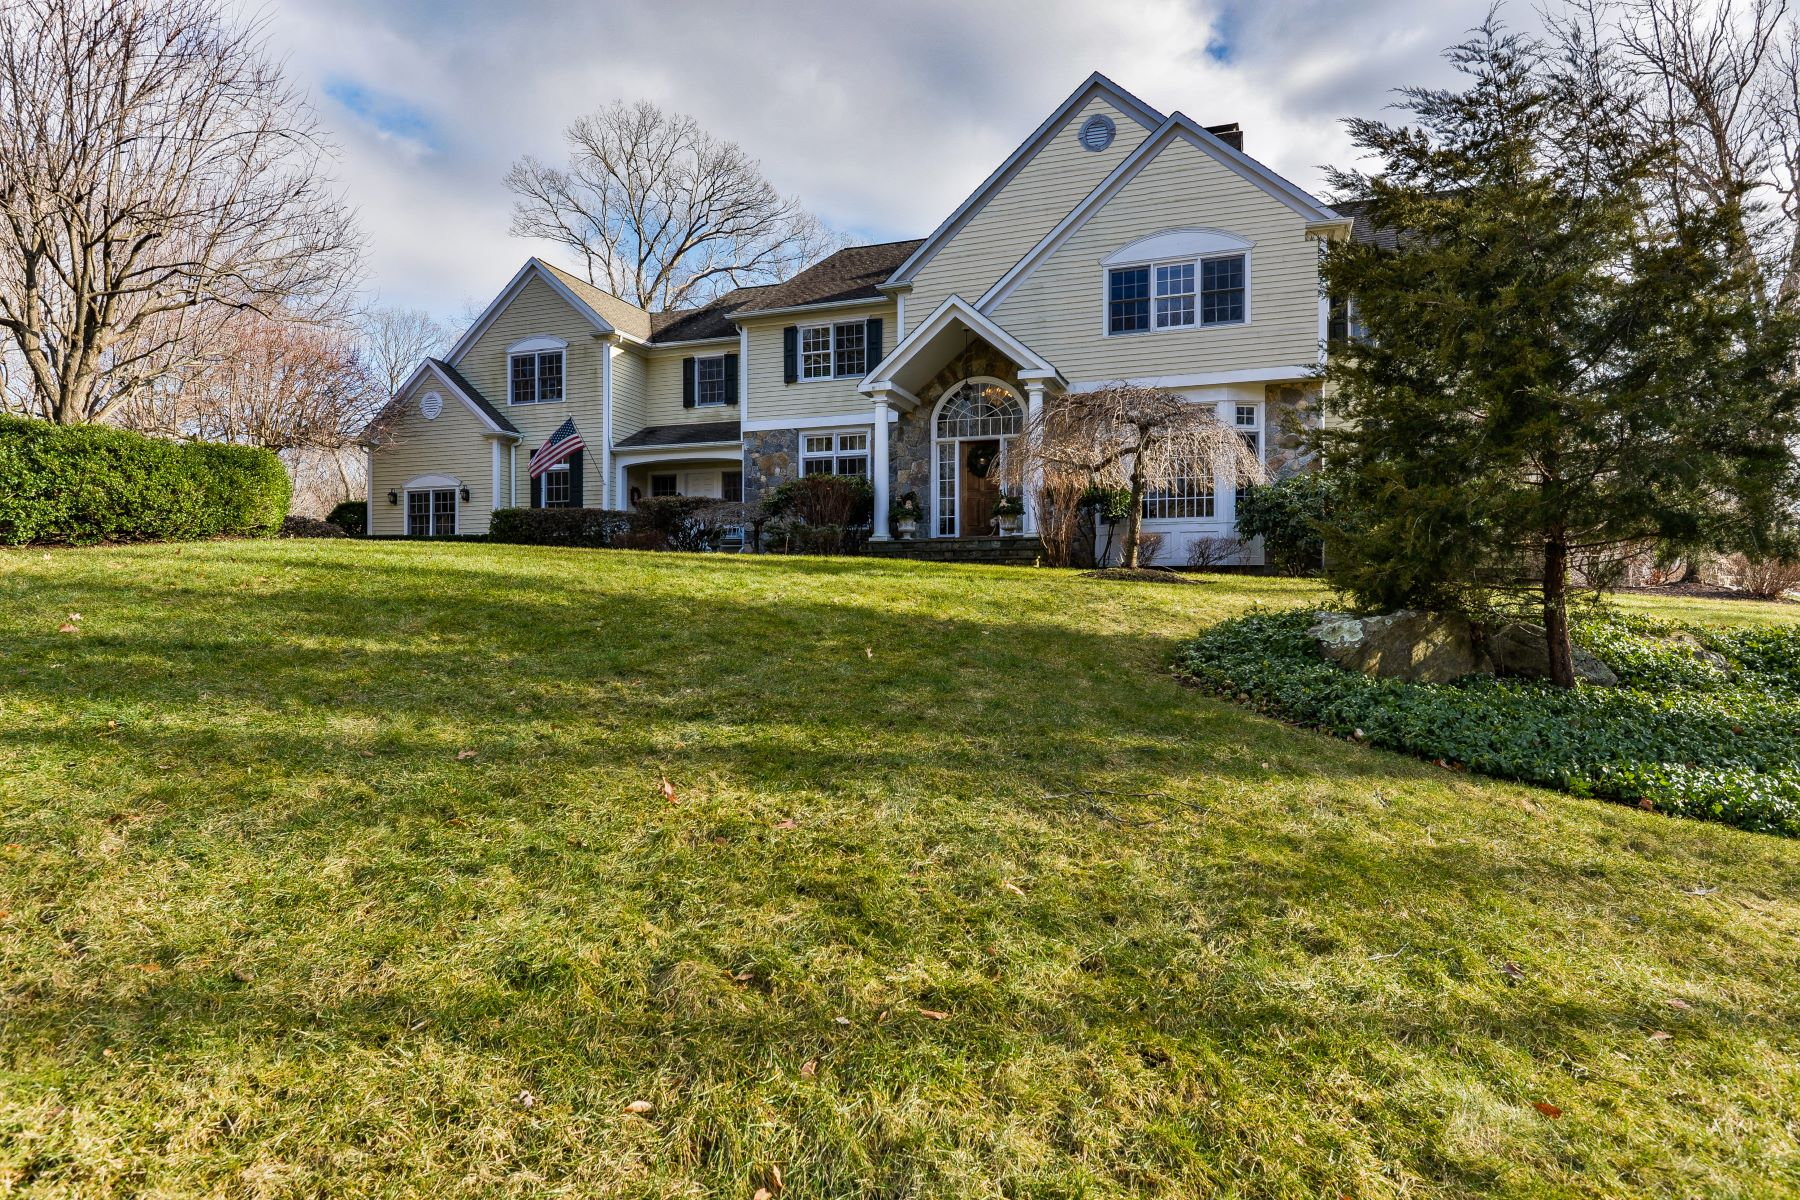 Single Family Home for Sale at Sweeping Views From Private Hilltop 7 Harvest Lane Weston, Connecticut 06883 United States